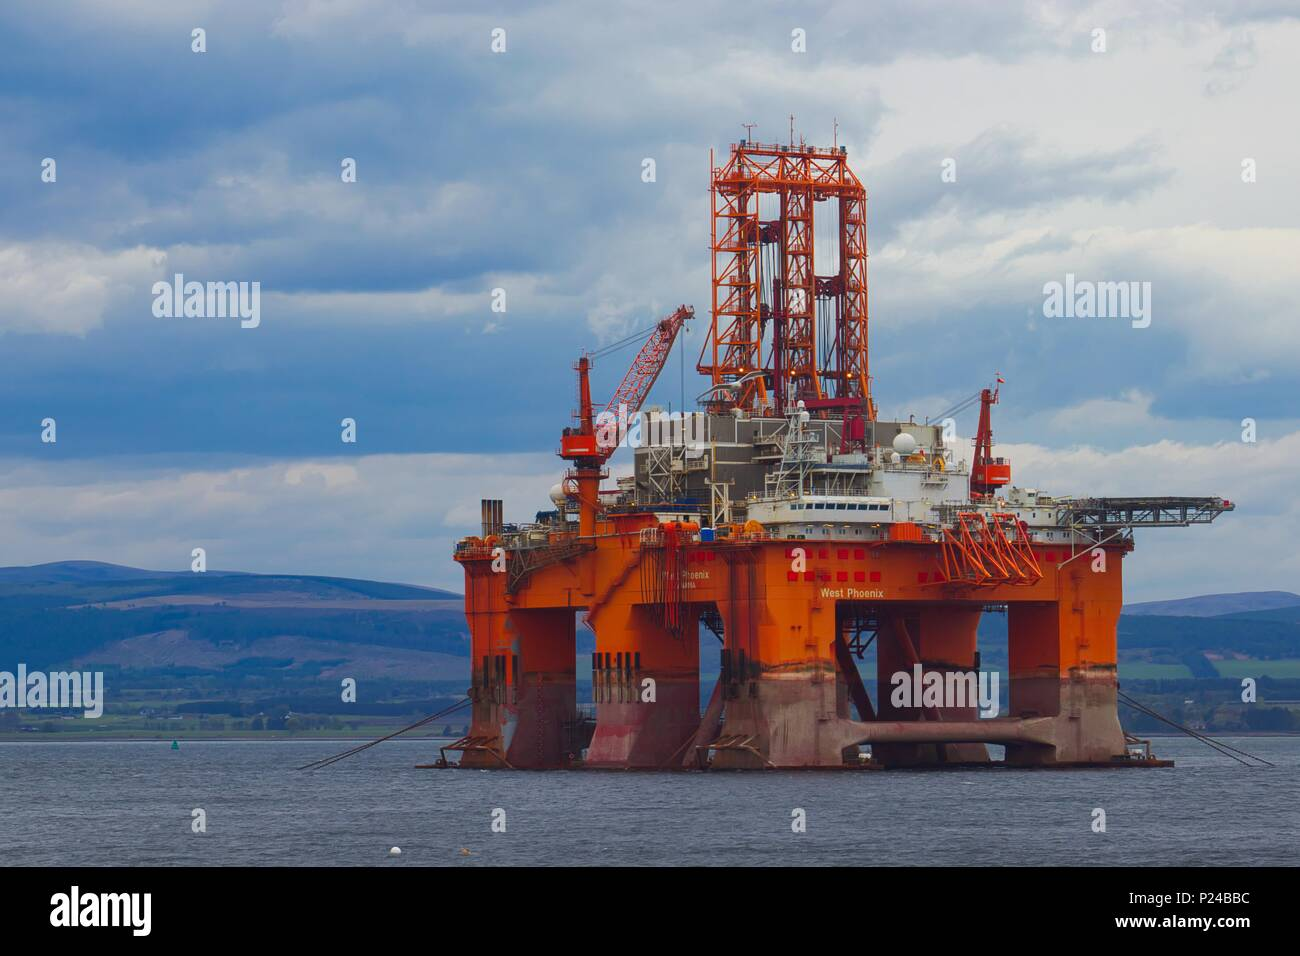 An oil rig anchored in the Cromarty Firth, Scotland - Stock Image